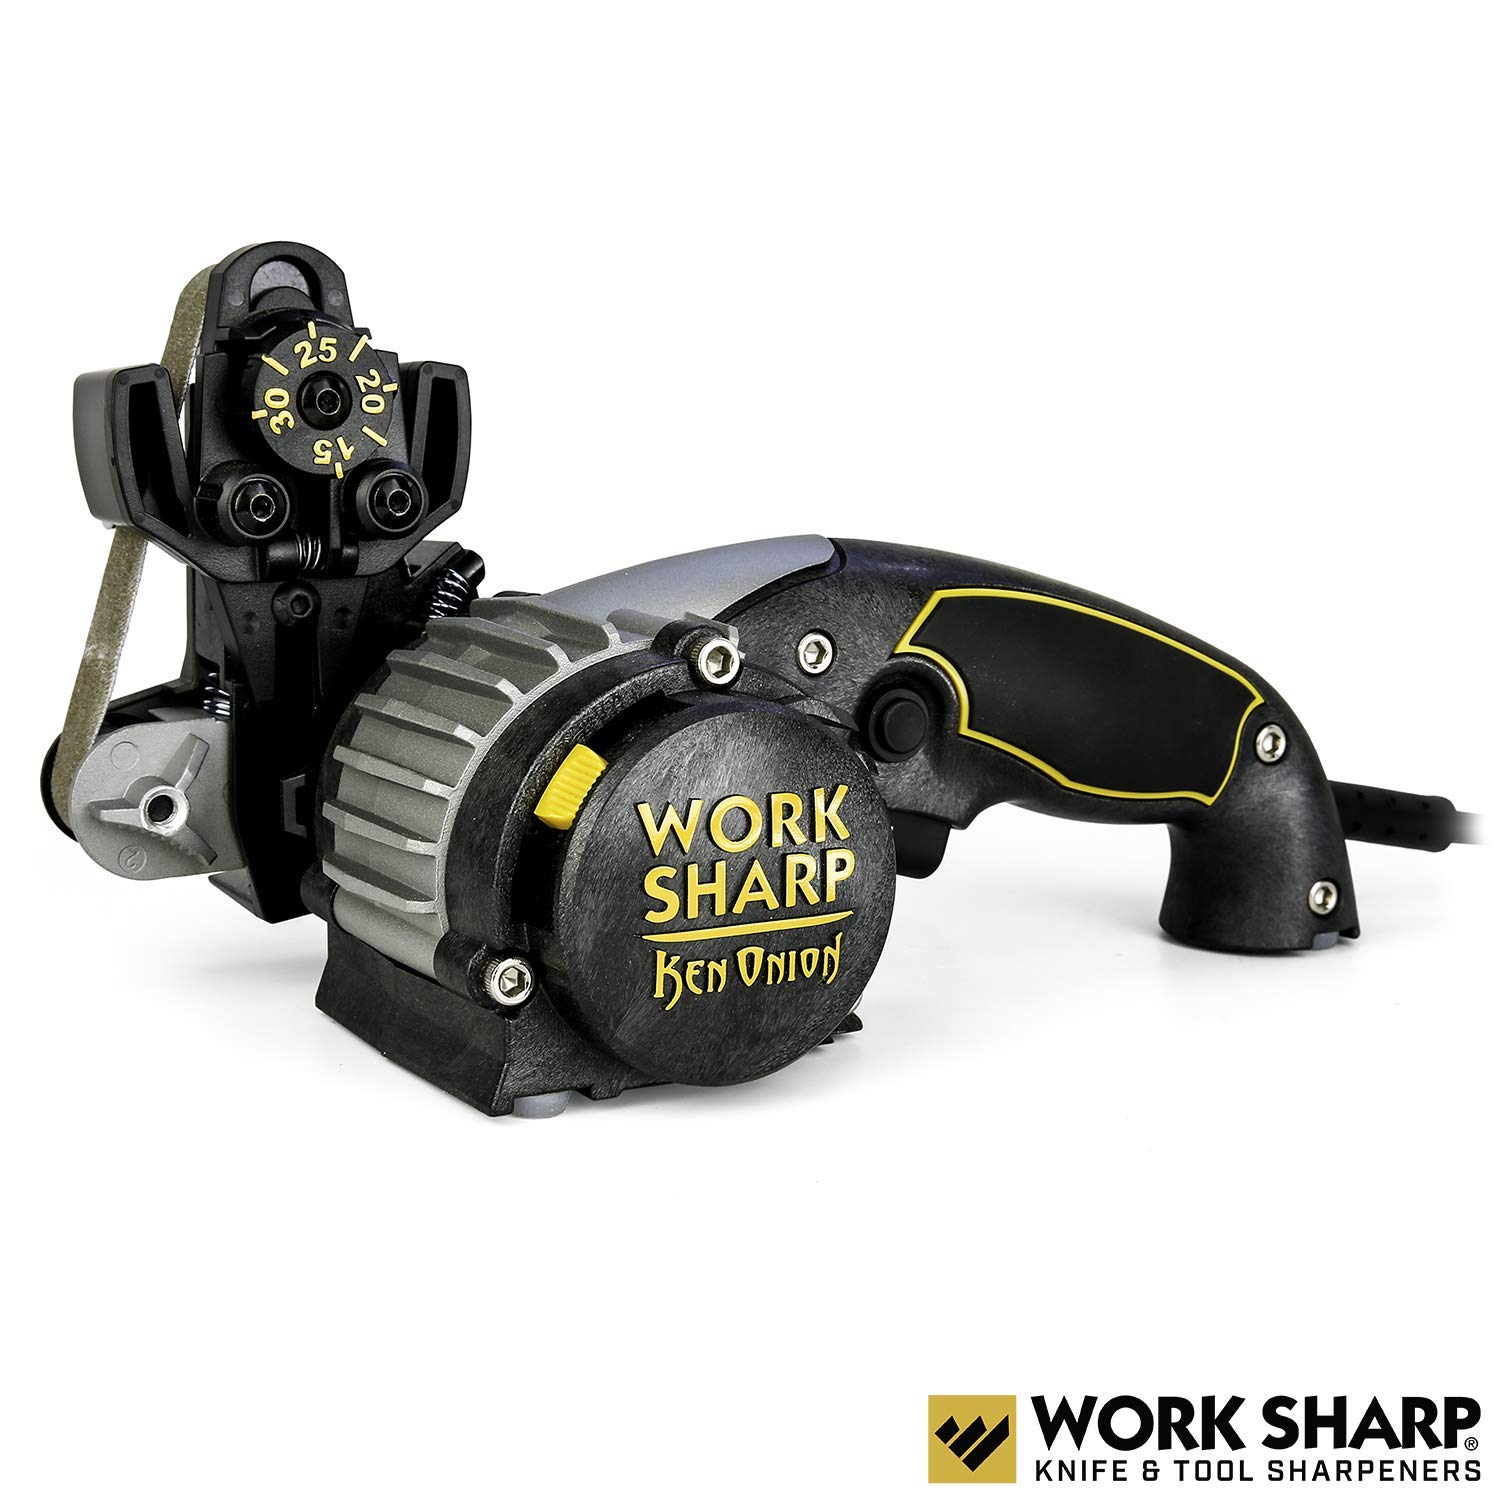 Work Sharp Knife & Tool Sharpener Ken Onion Edition - sharpening angles from 15° to 30°, flexible abrasive belts, variable speed motor, multi-positioning sharpening